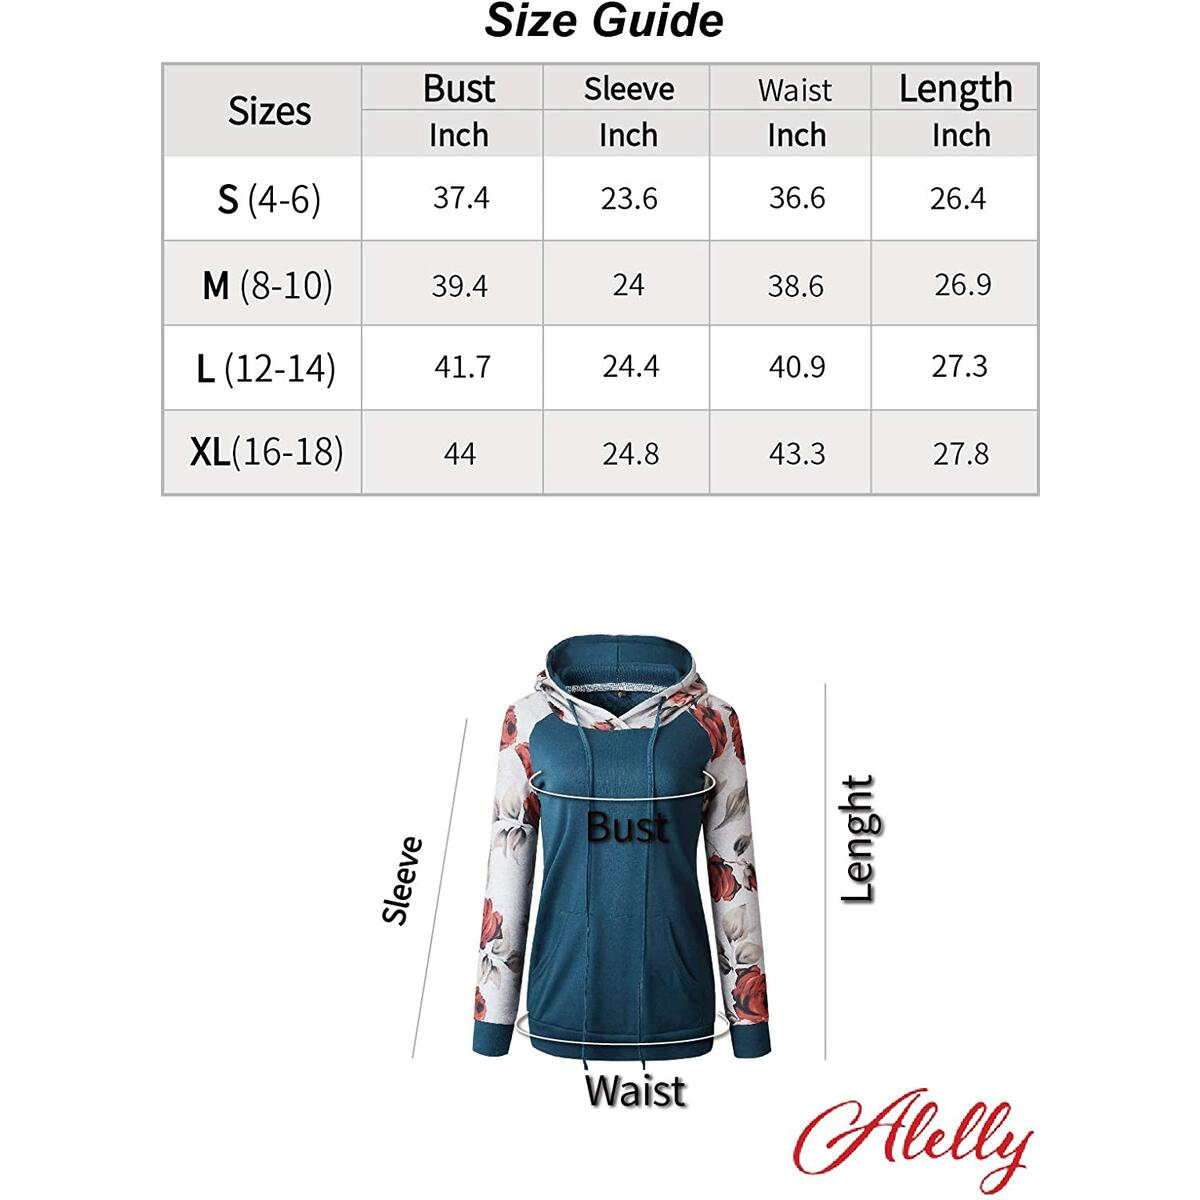 Alelly Women's Pullover Long Sleeve Stitching Casual Hooded Sweatshirt Pocket